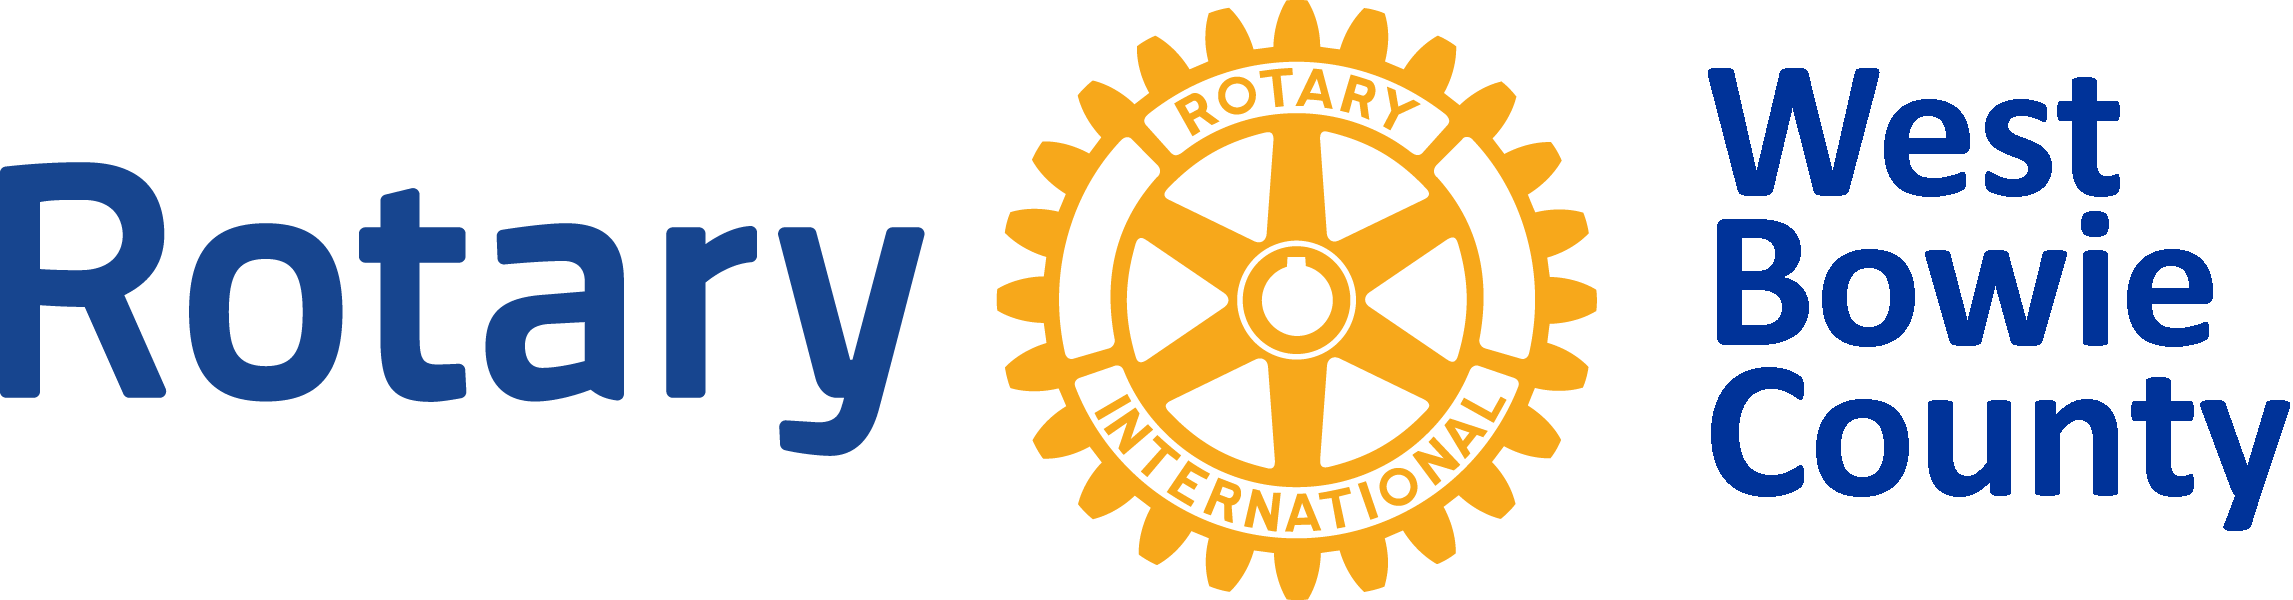 West Bowie County Rotary Club